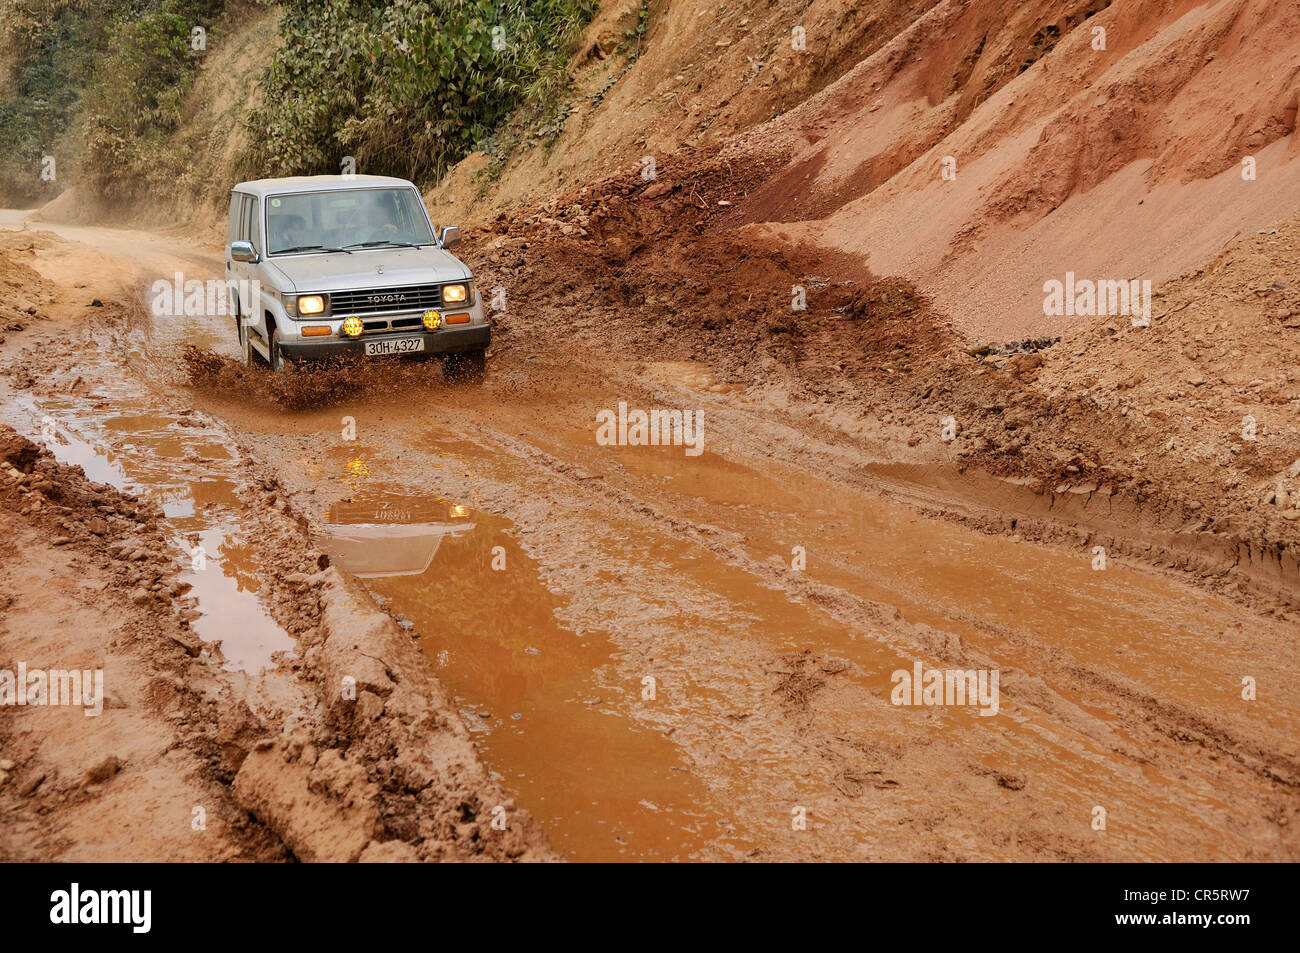 Toyota Land Cruiser driving on a muddy road through puddles, Vietnam, Asia - Stock Image